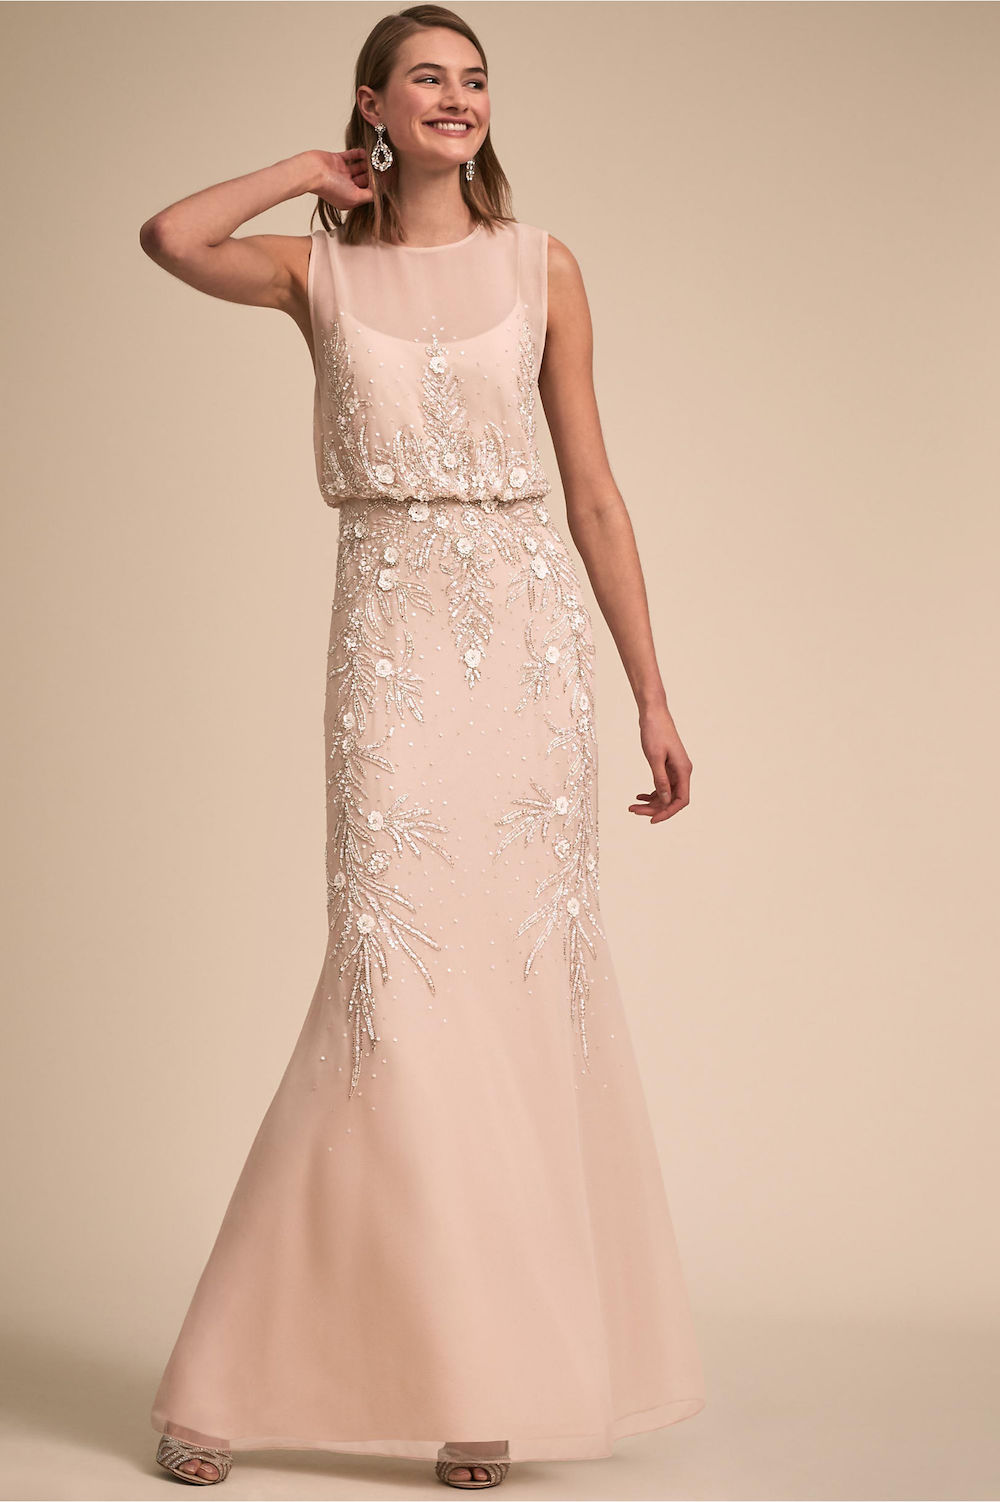 Elegantly Chic BHLDN Bridesmaids Dresses that Can Be Worn as Wedding ...